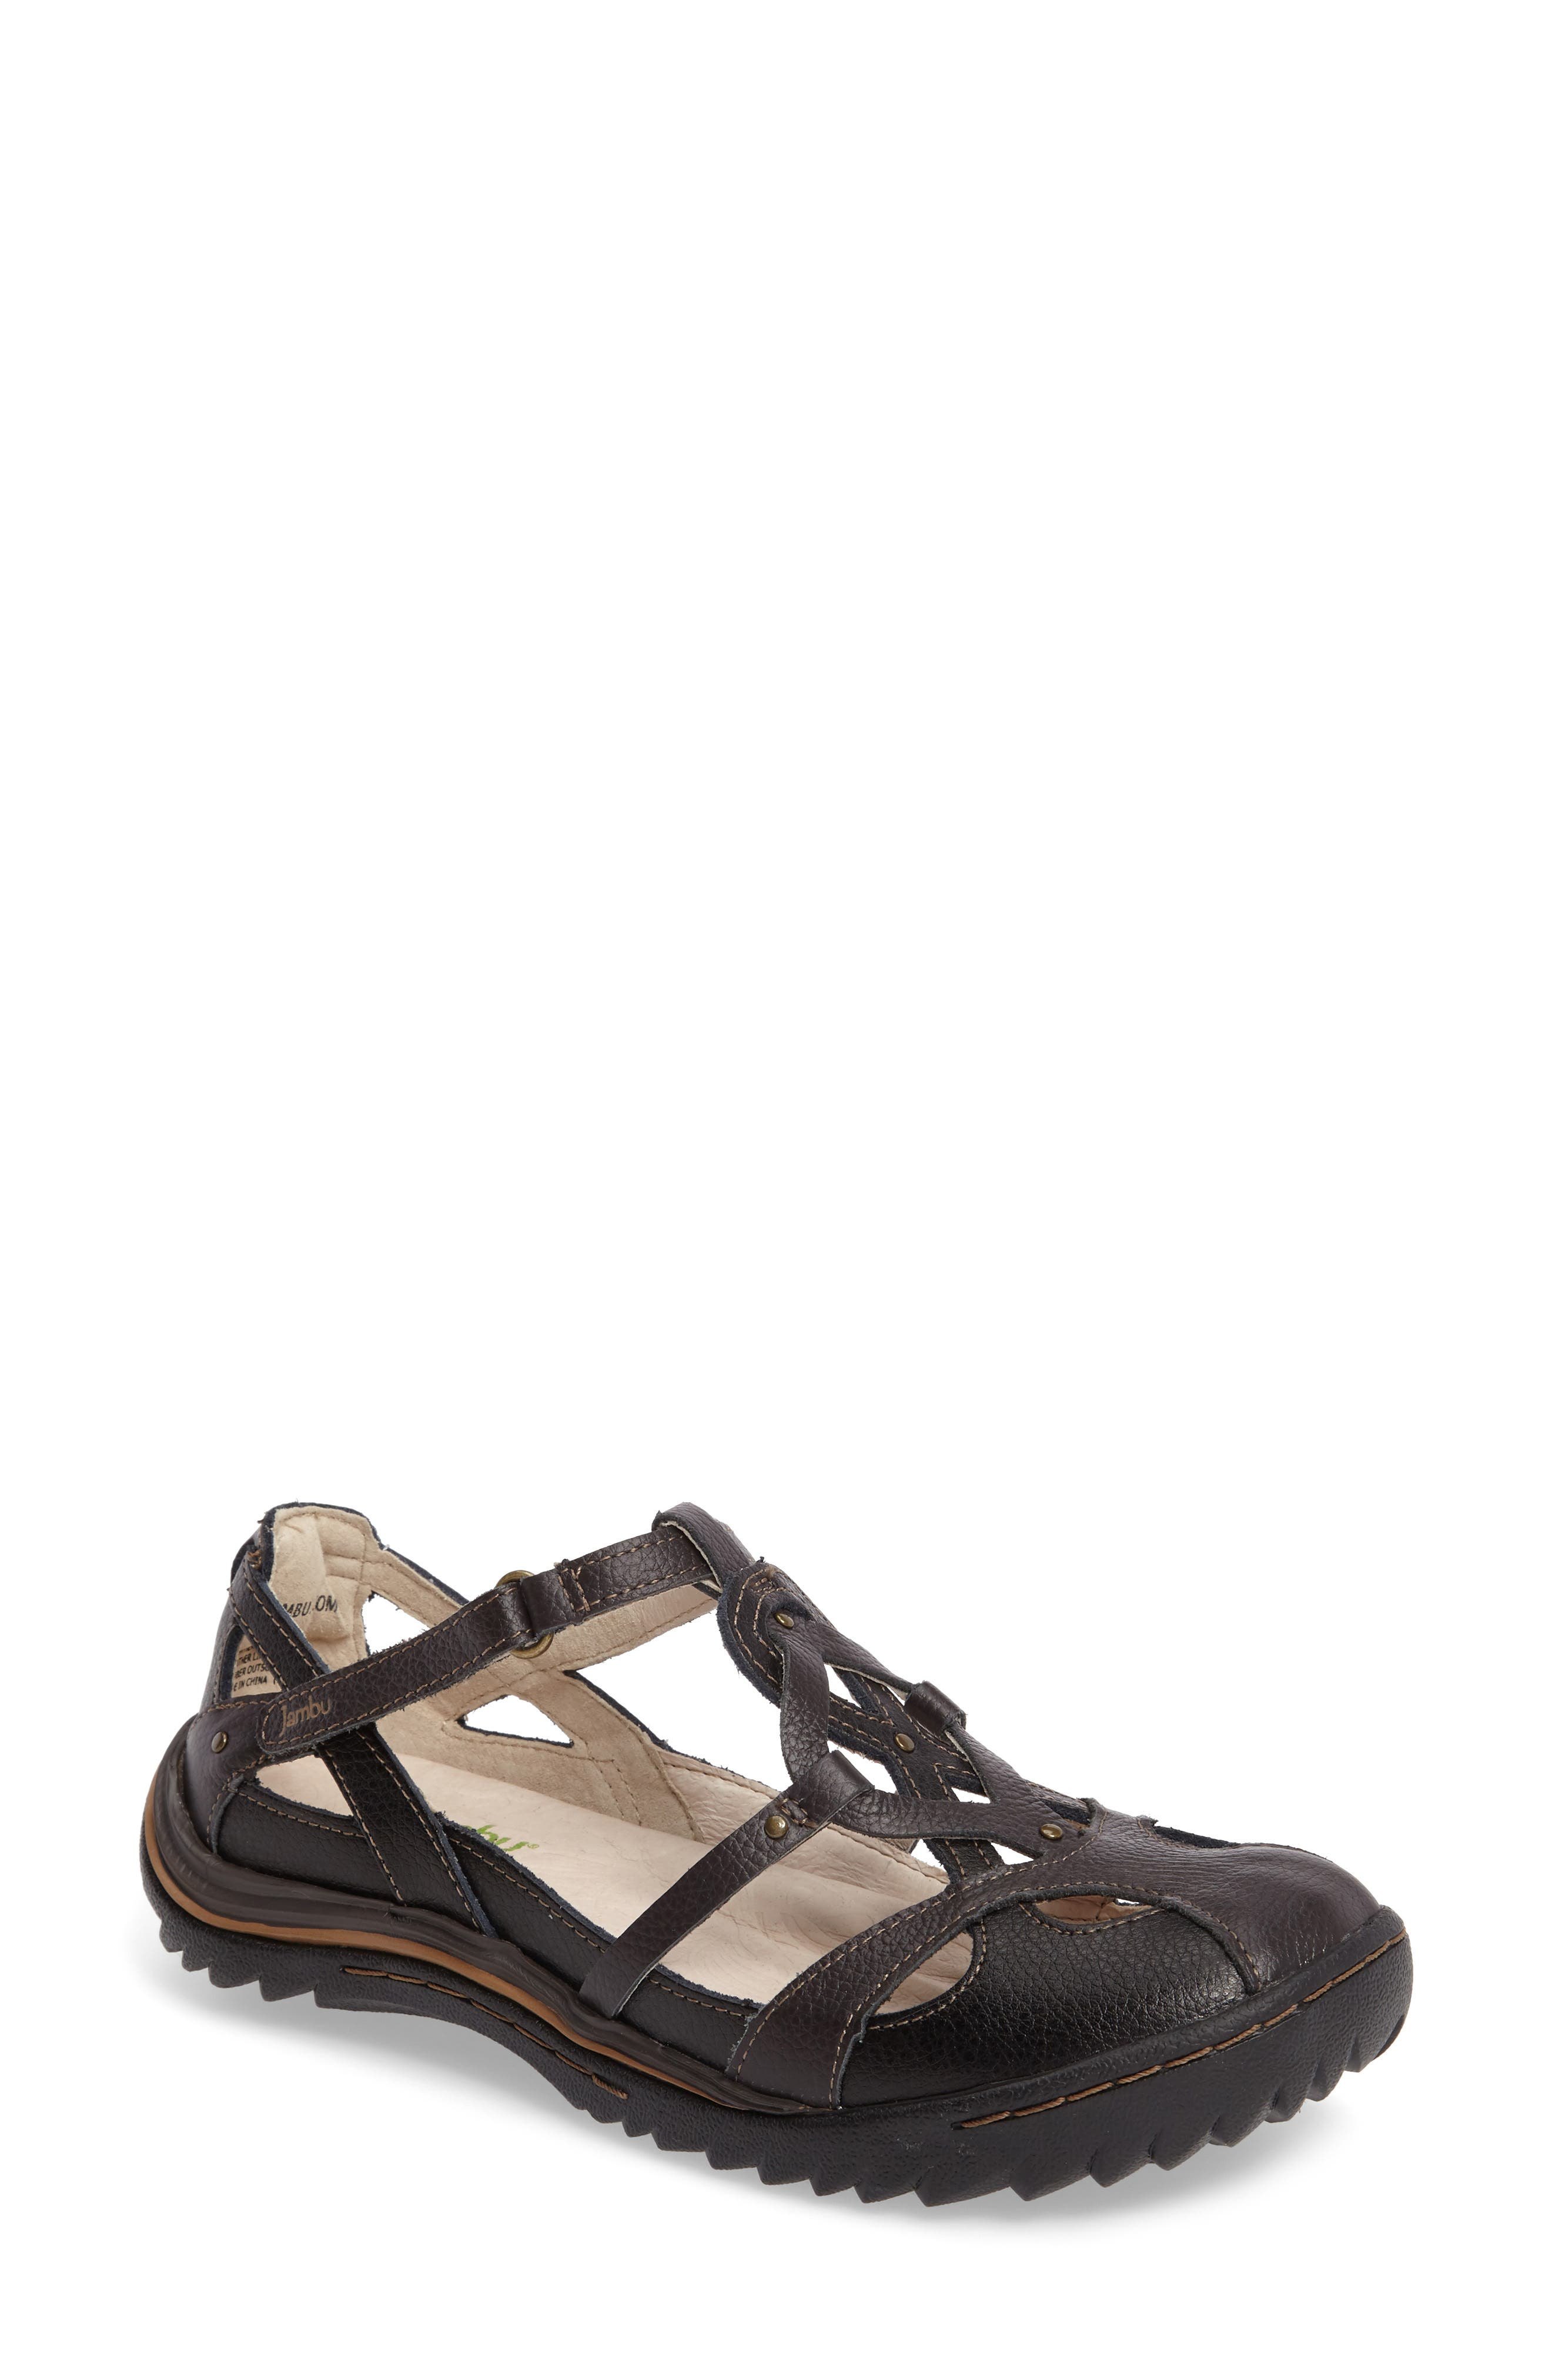 JAMBU Spain Studded Strappy Sneaker, Main, color, BLACK LEATHER